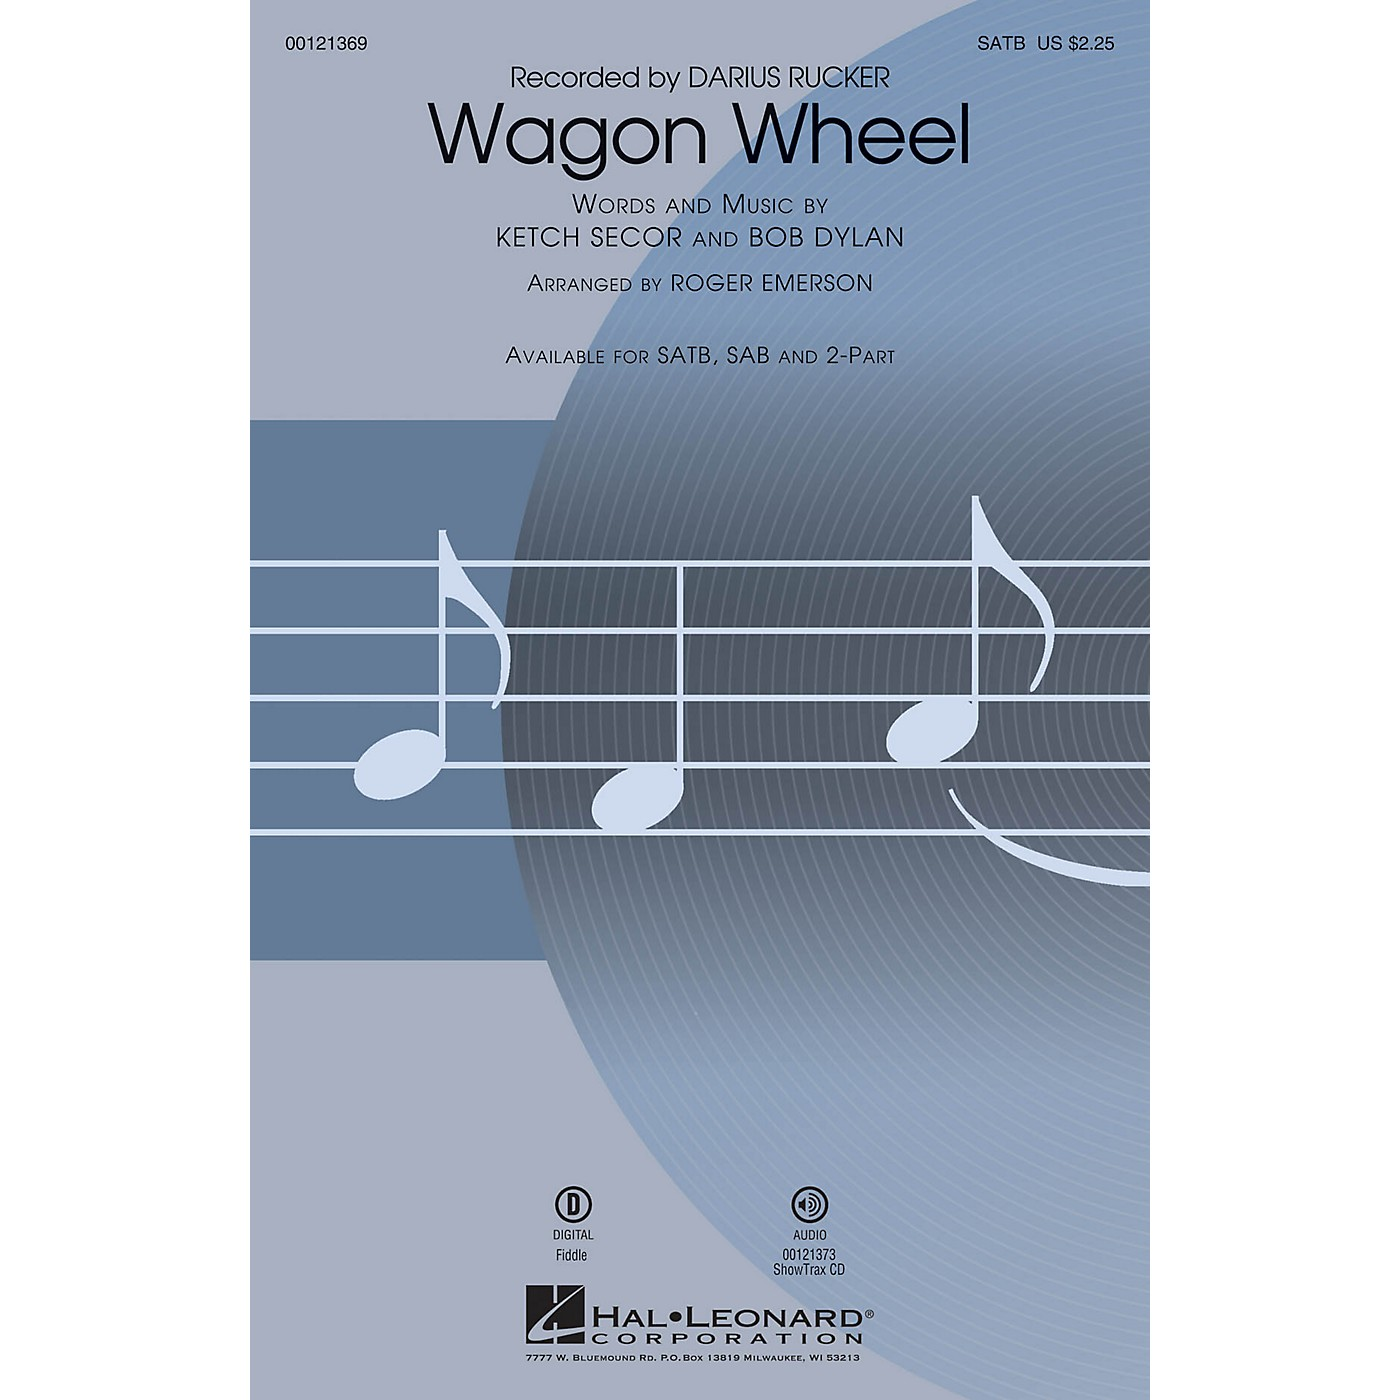 Hal Leonard Wagon Wheel 2-Part by Darius Rucker Arranged by Roger Emerson thumbnail